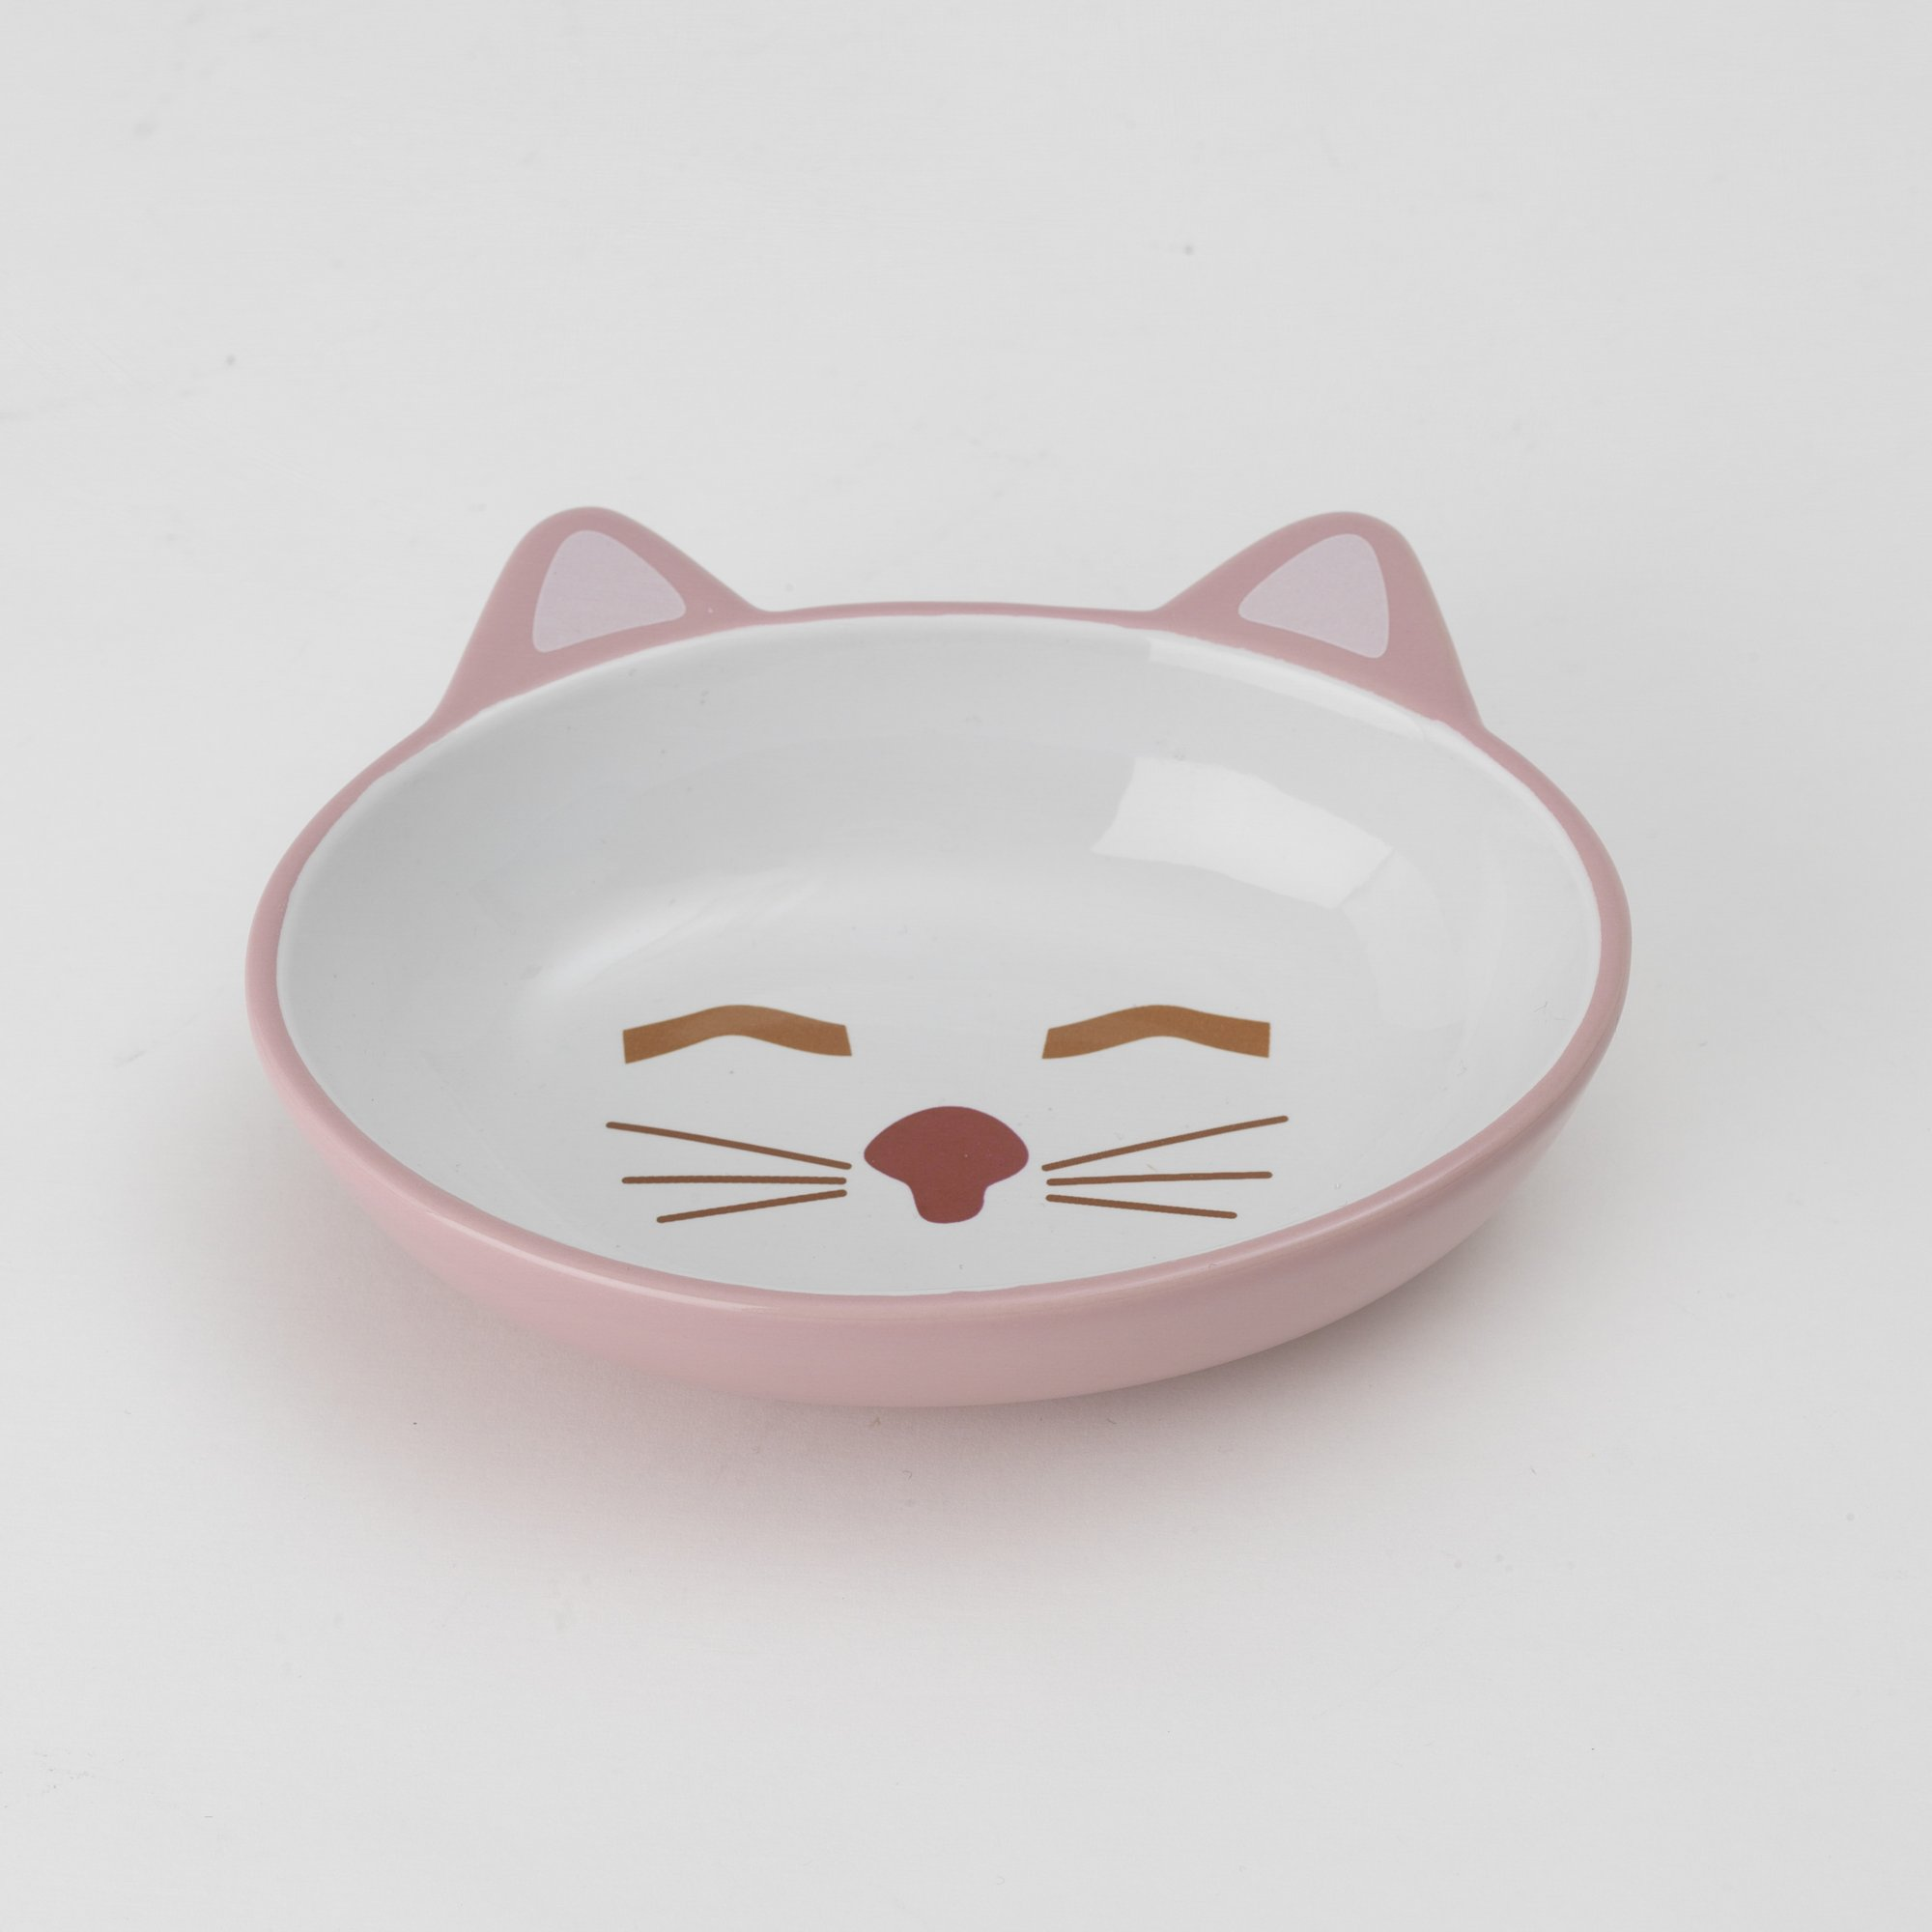 Petrageous Designs Sleepy Kitty Pink Cat Bowl